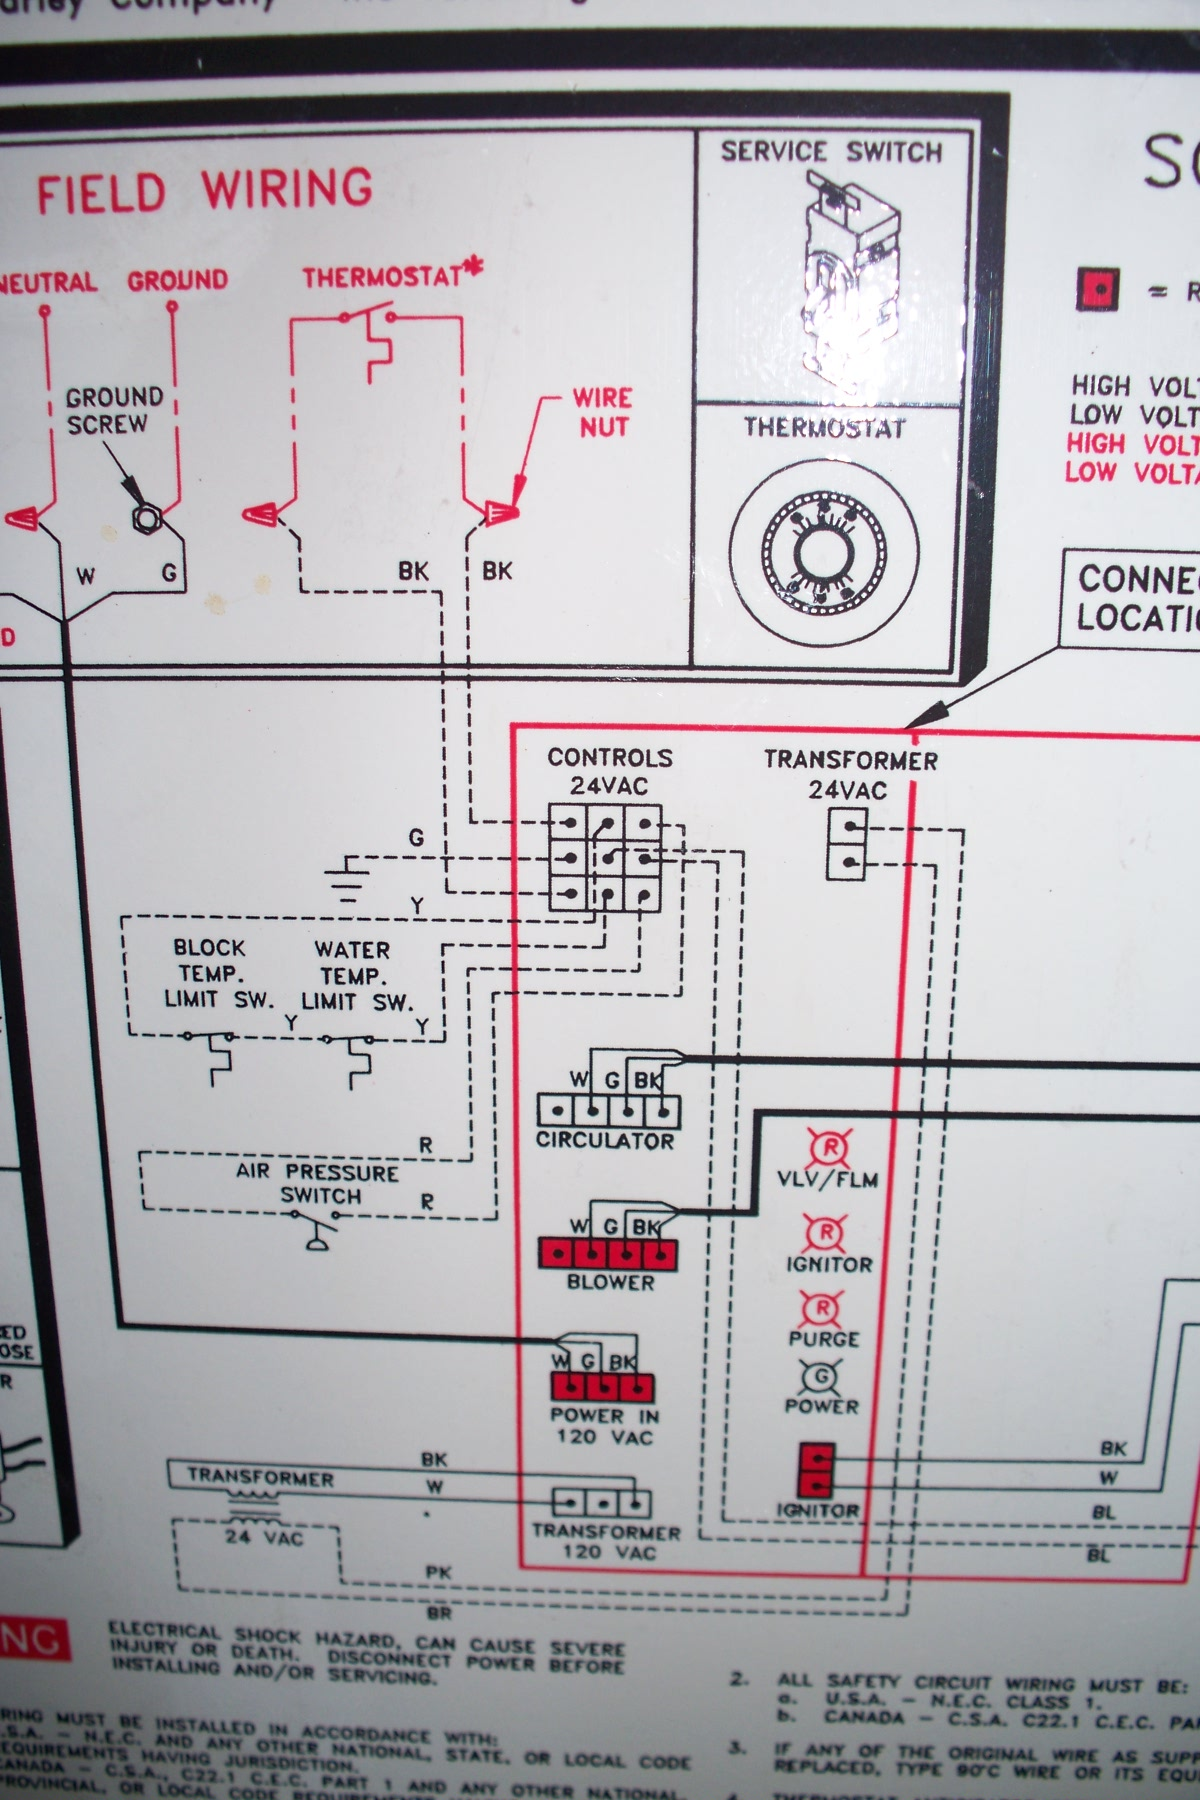 2014 01 12_010619_100_3141 i have a weil mcclain gv5 series 2 boiler with an amtrol amtrol boilermate wiring diagram at webbmarketing.co